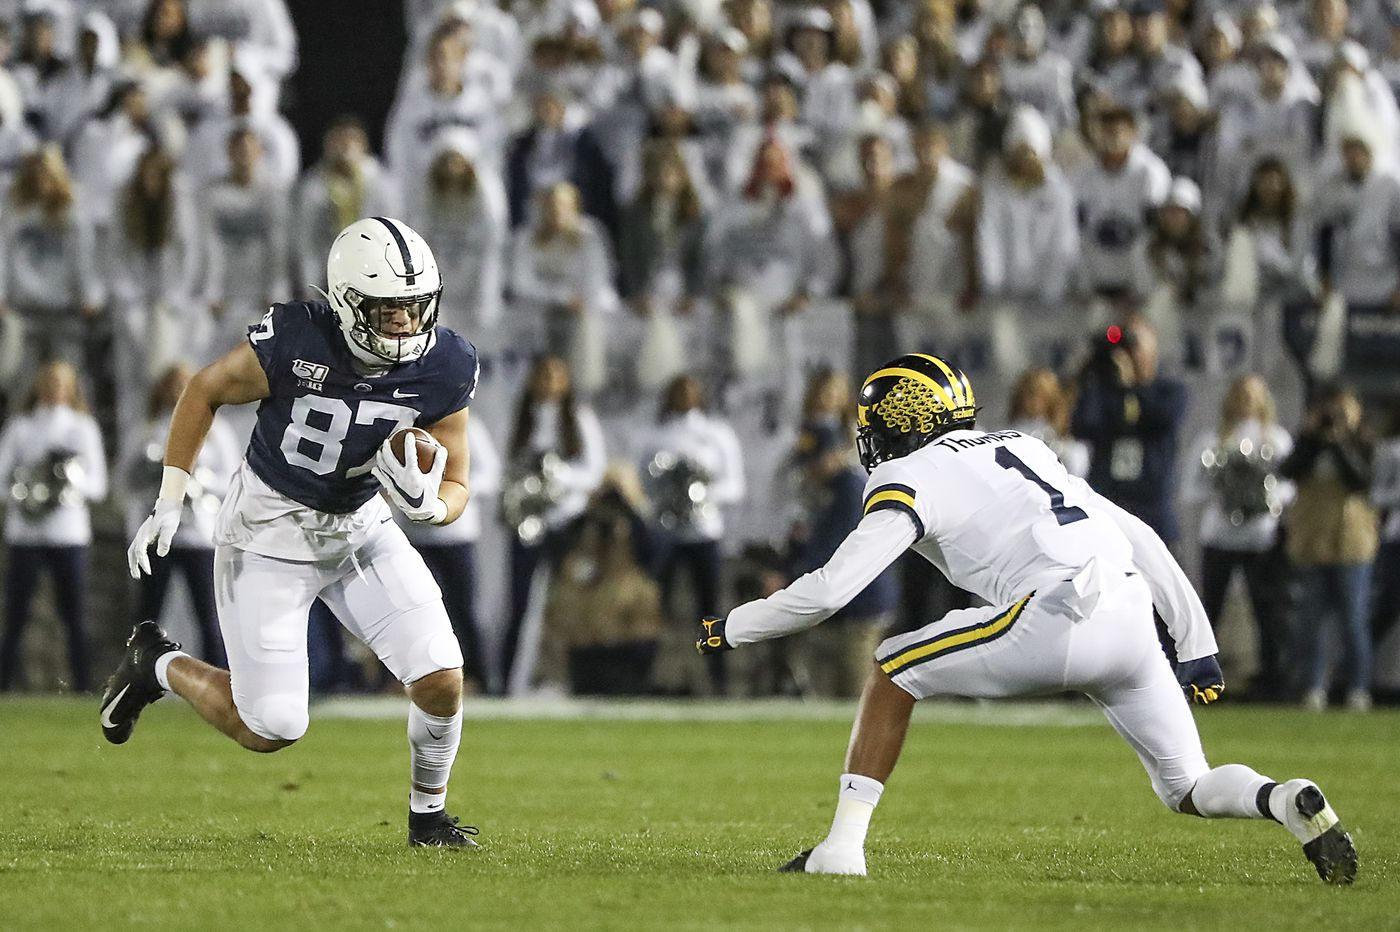 Penn State places three offensive players on All-Big Ten second teams